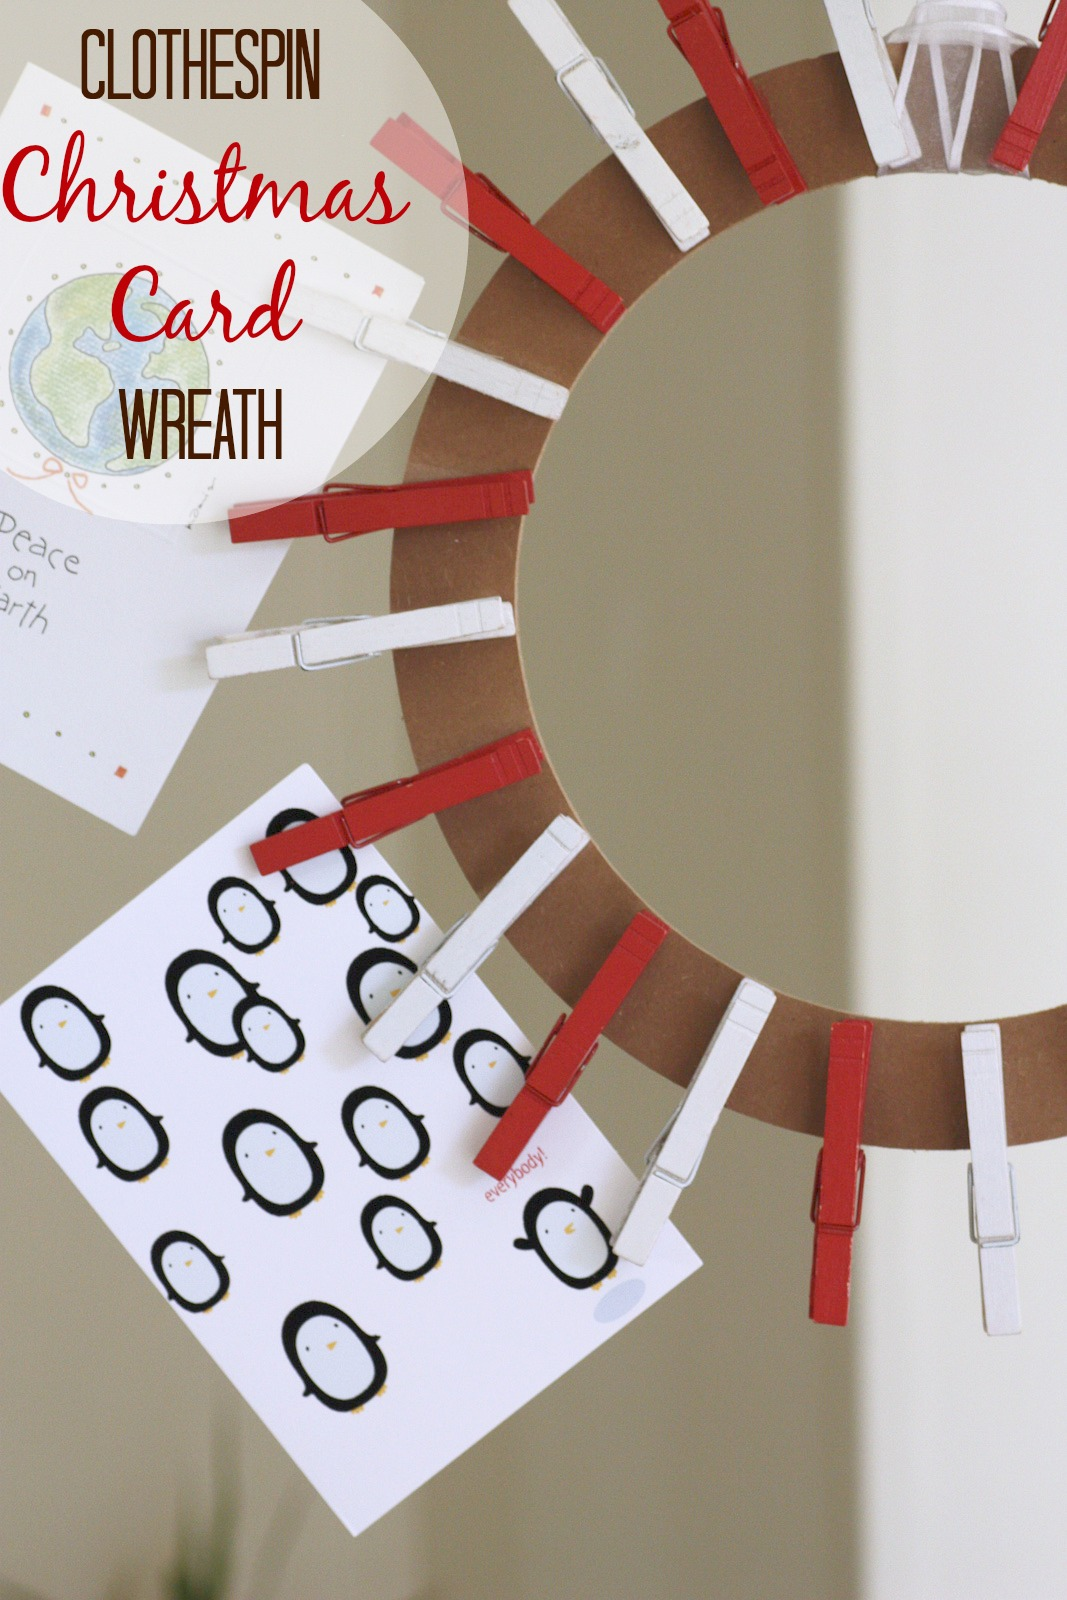 Clothespin Wreath 23 Interesting Tutorials Guide Patterns